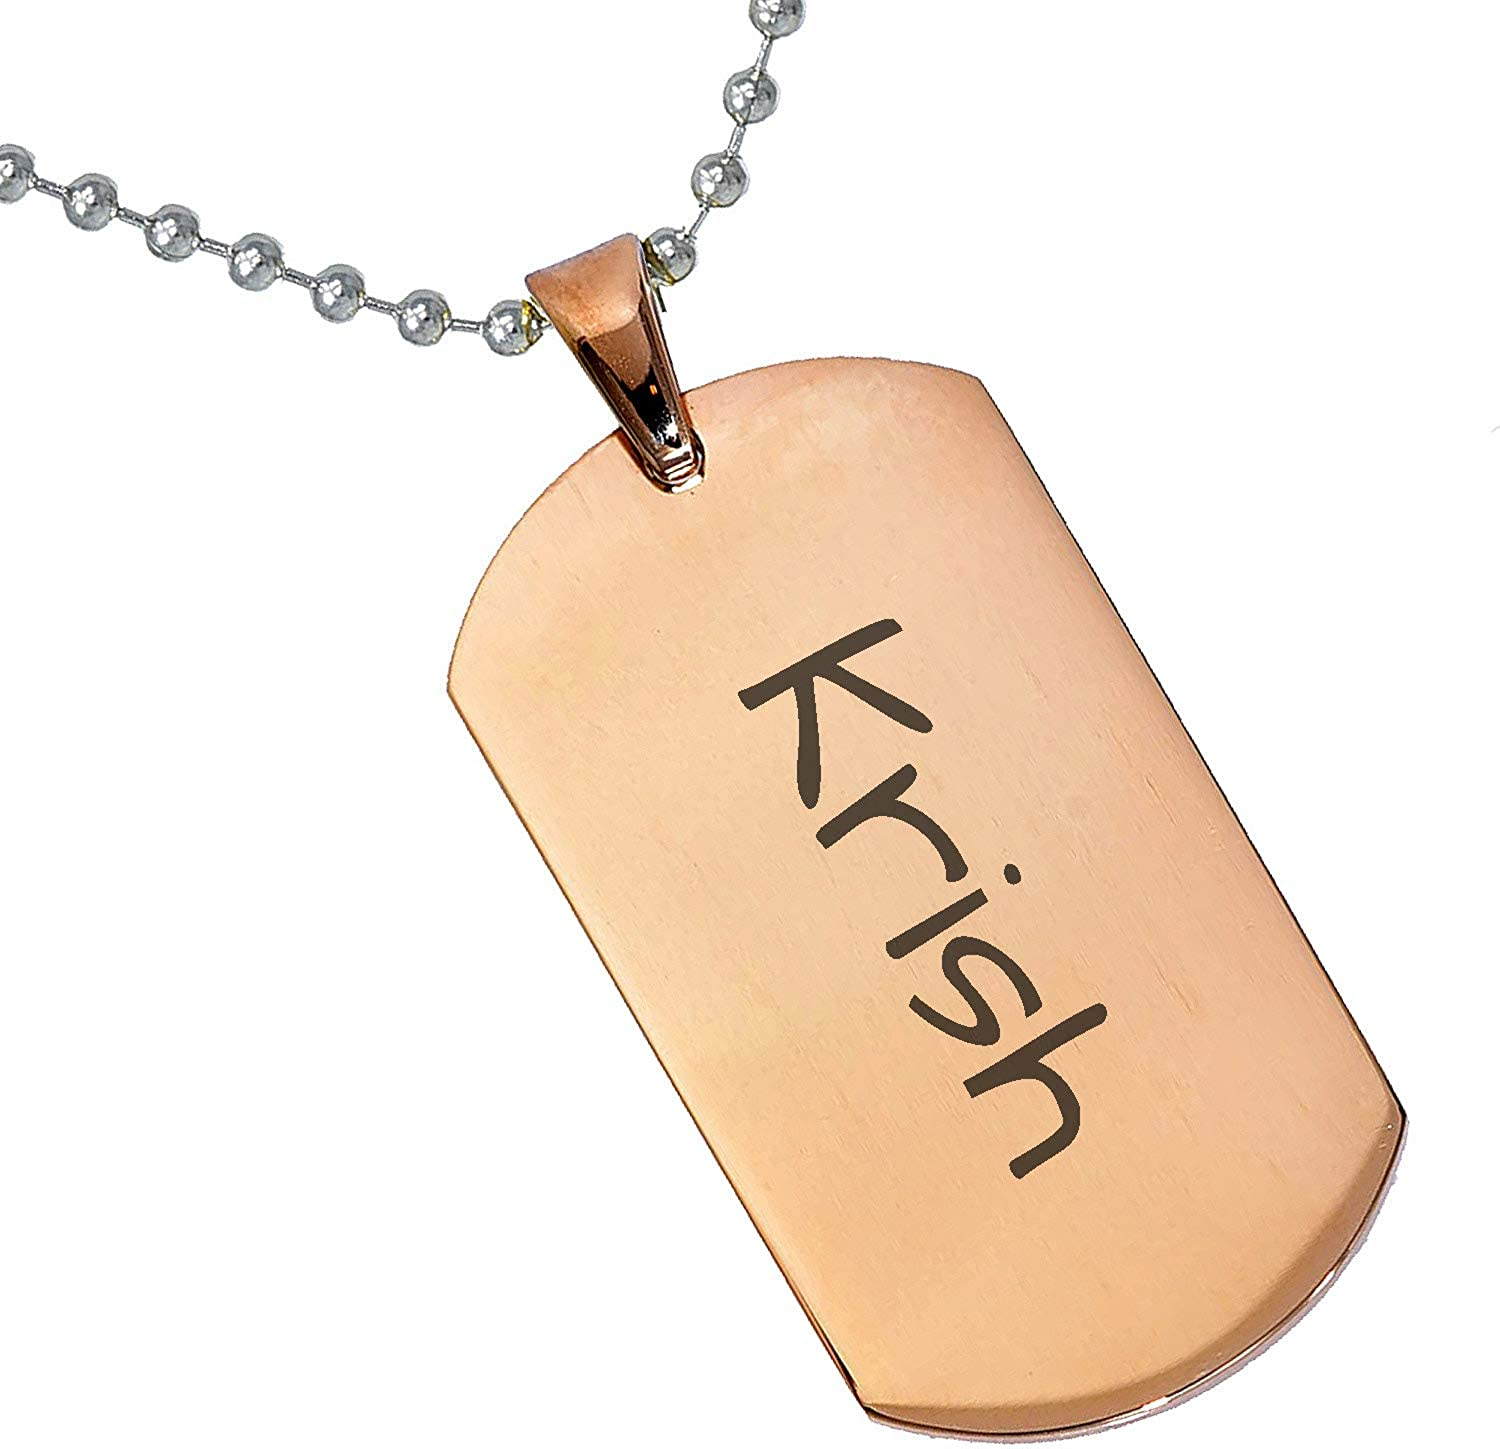 Stainless Steel Silver Gold Black Rose Gold Color Baby Name Krish Engraved Personalized Gifts For Son Daughter Boyfriend Girlfriend Initial Customizable Pendant Necklace Dog Tags 24 Ball Chain